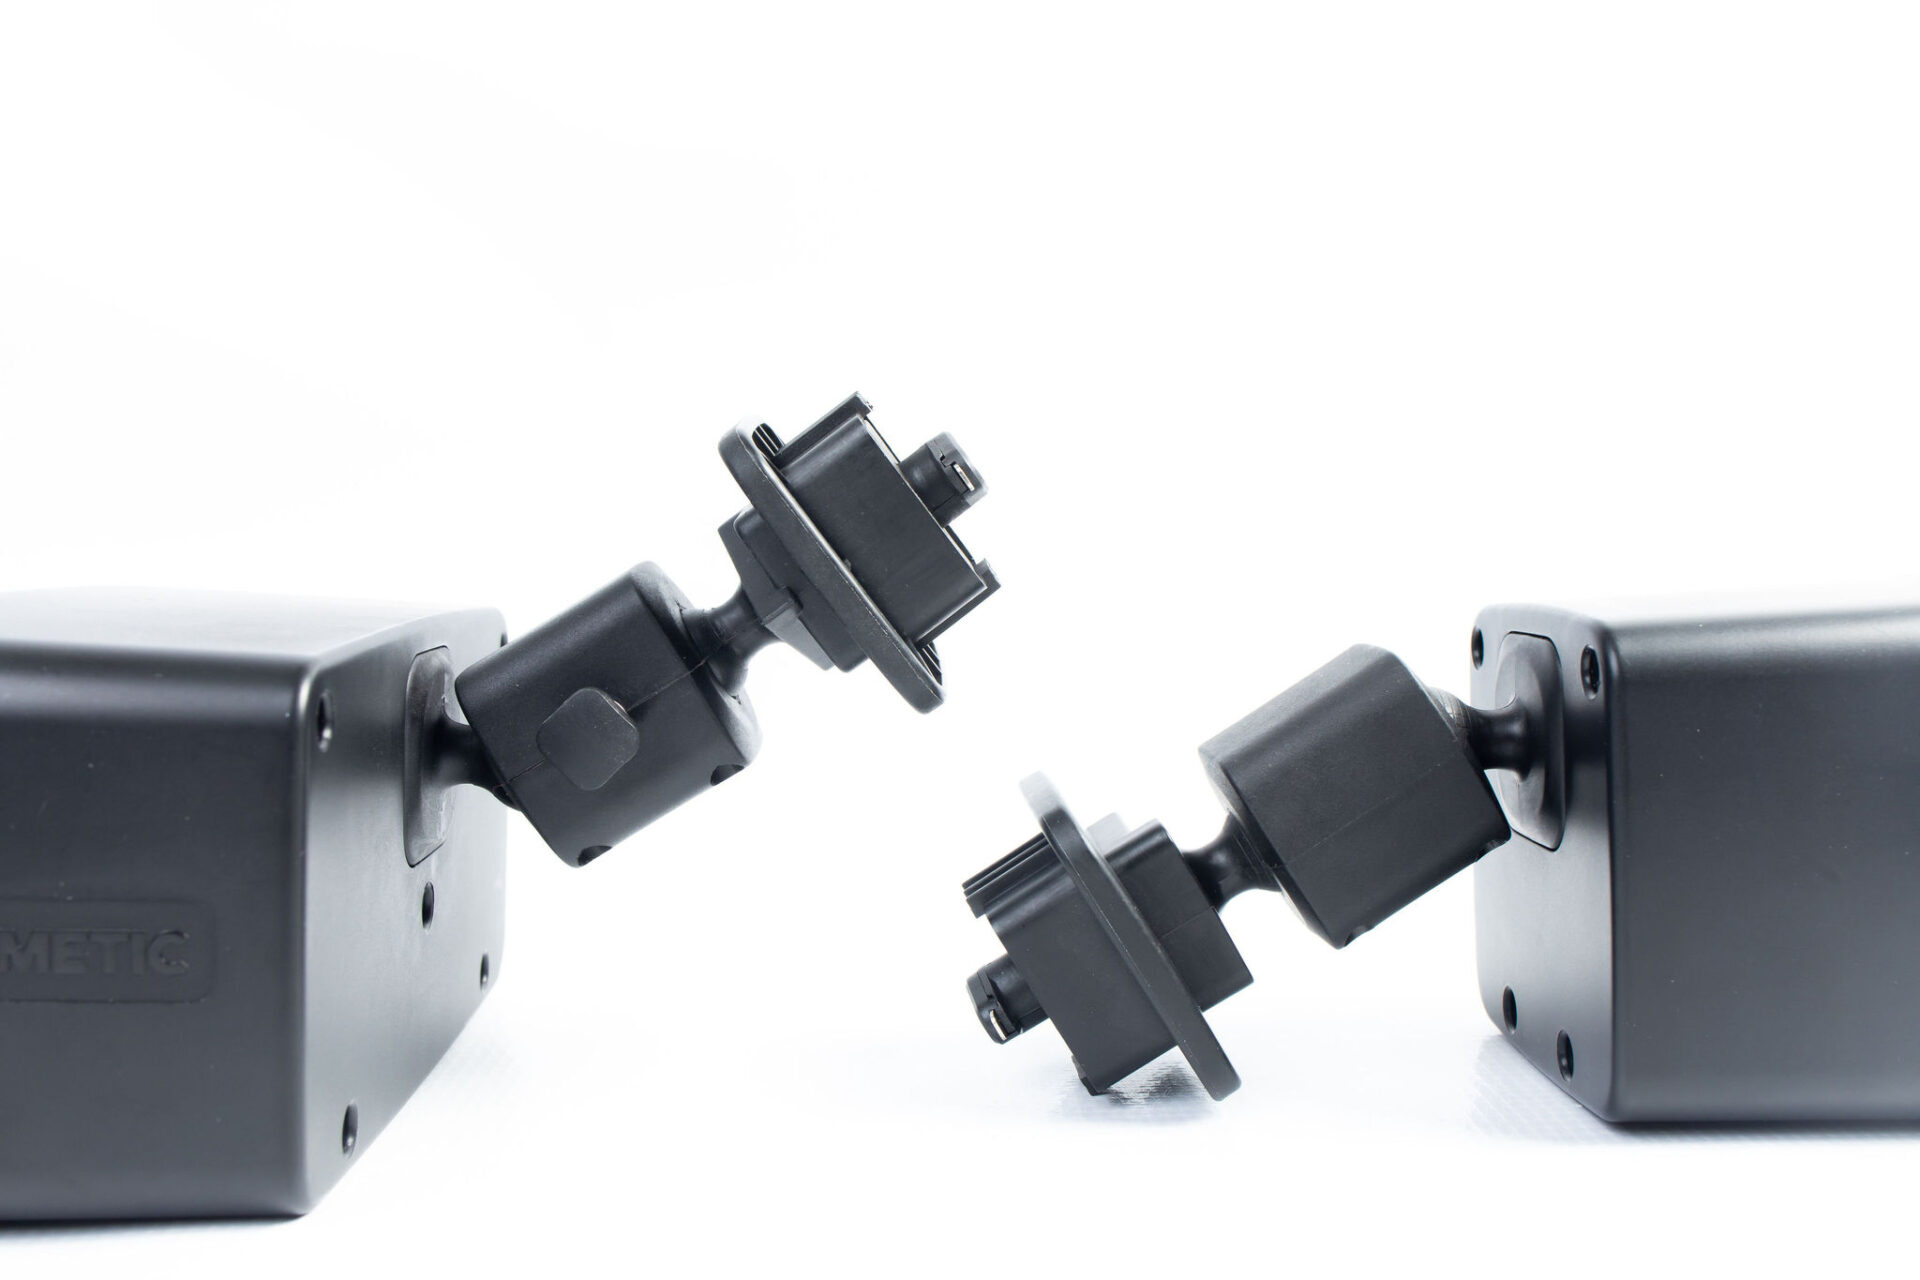 black plastic mounting devices